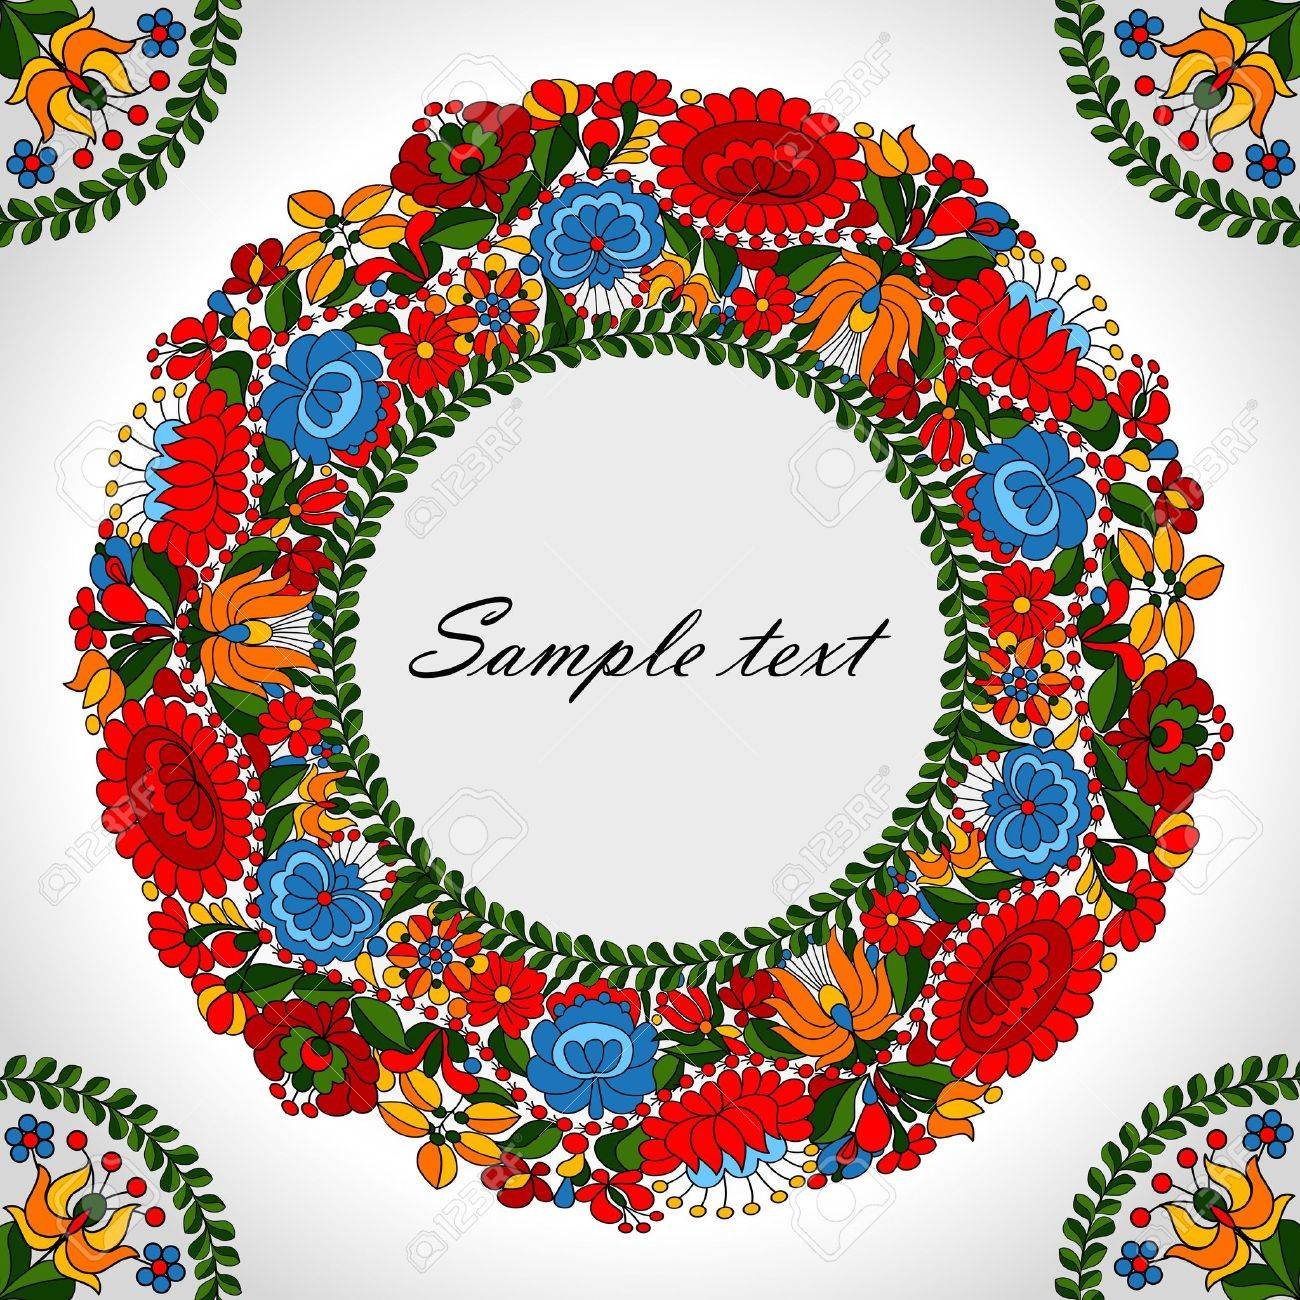 Hungarian traditional folk ornament circle background template - 14580905